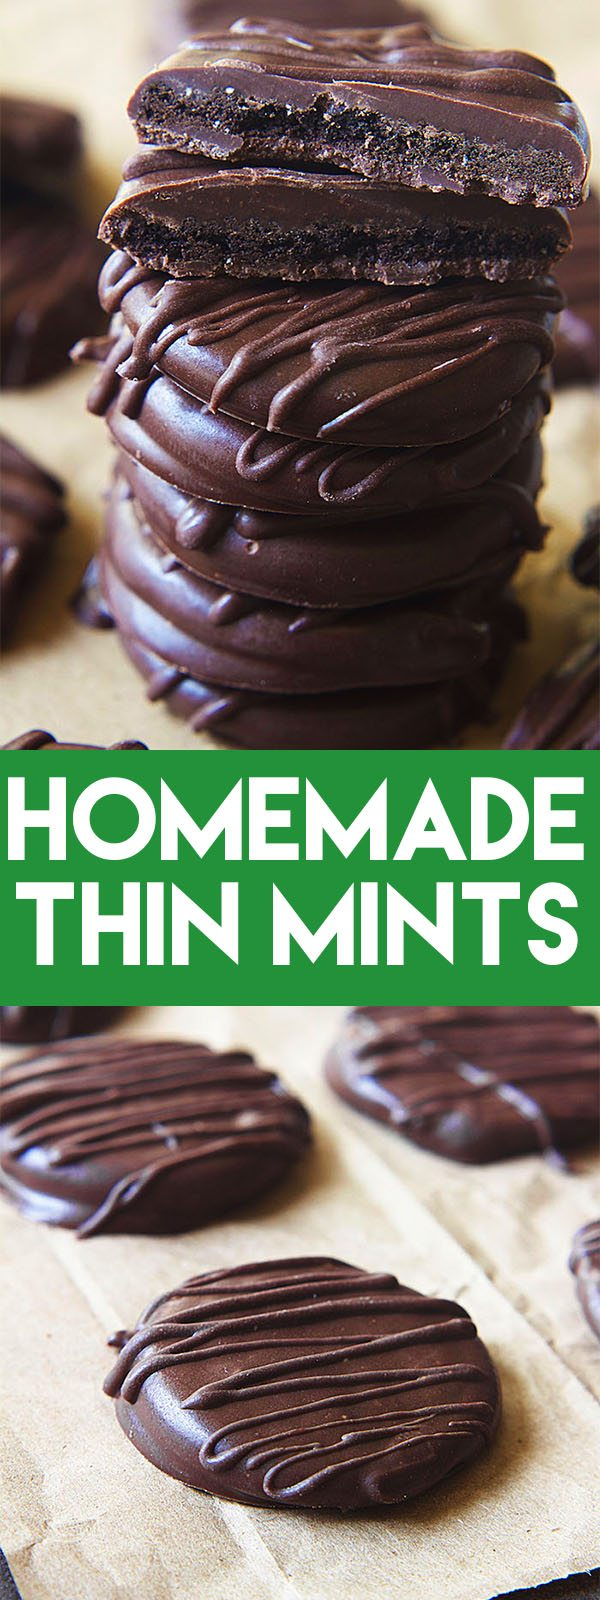 Homemade Thin Mints are so easy to make and you can enjoy them long after Girl Scout cookie season is over! #thinmints #girlscoutcookie #cookie #dessert #chocolate #mint #easy #nobake